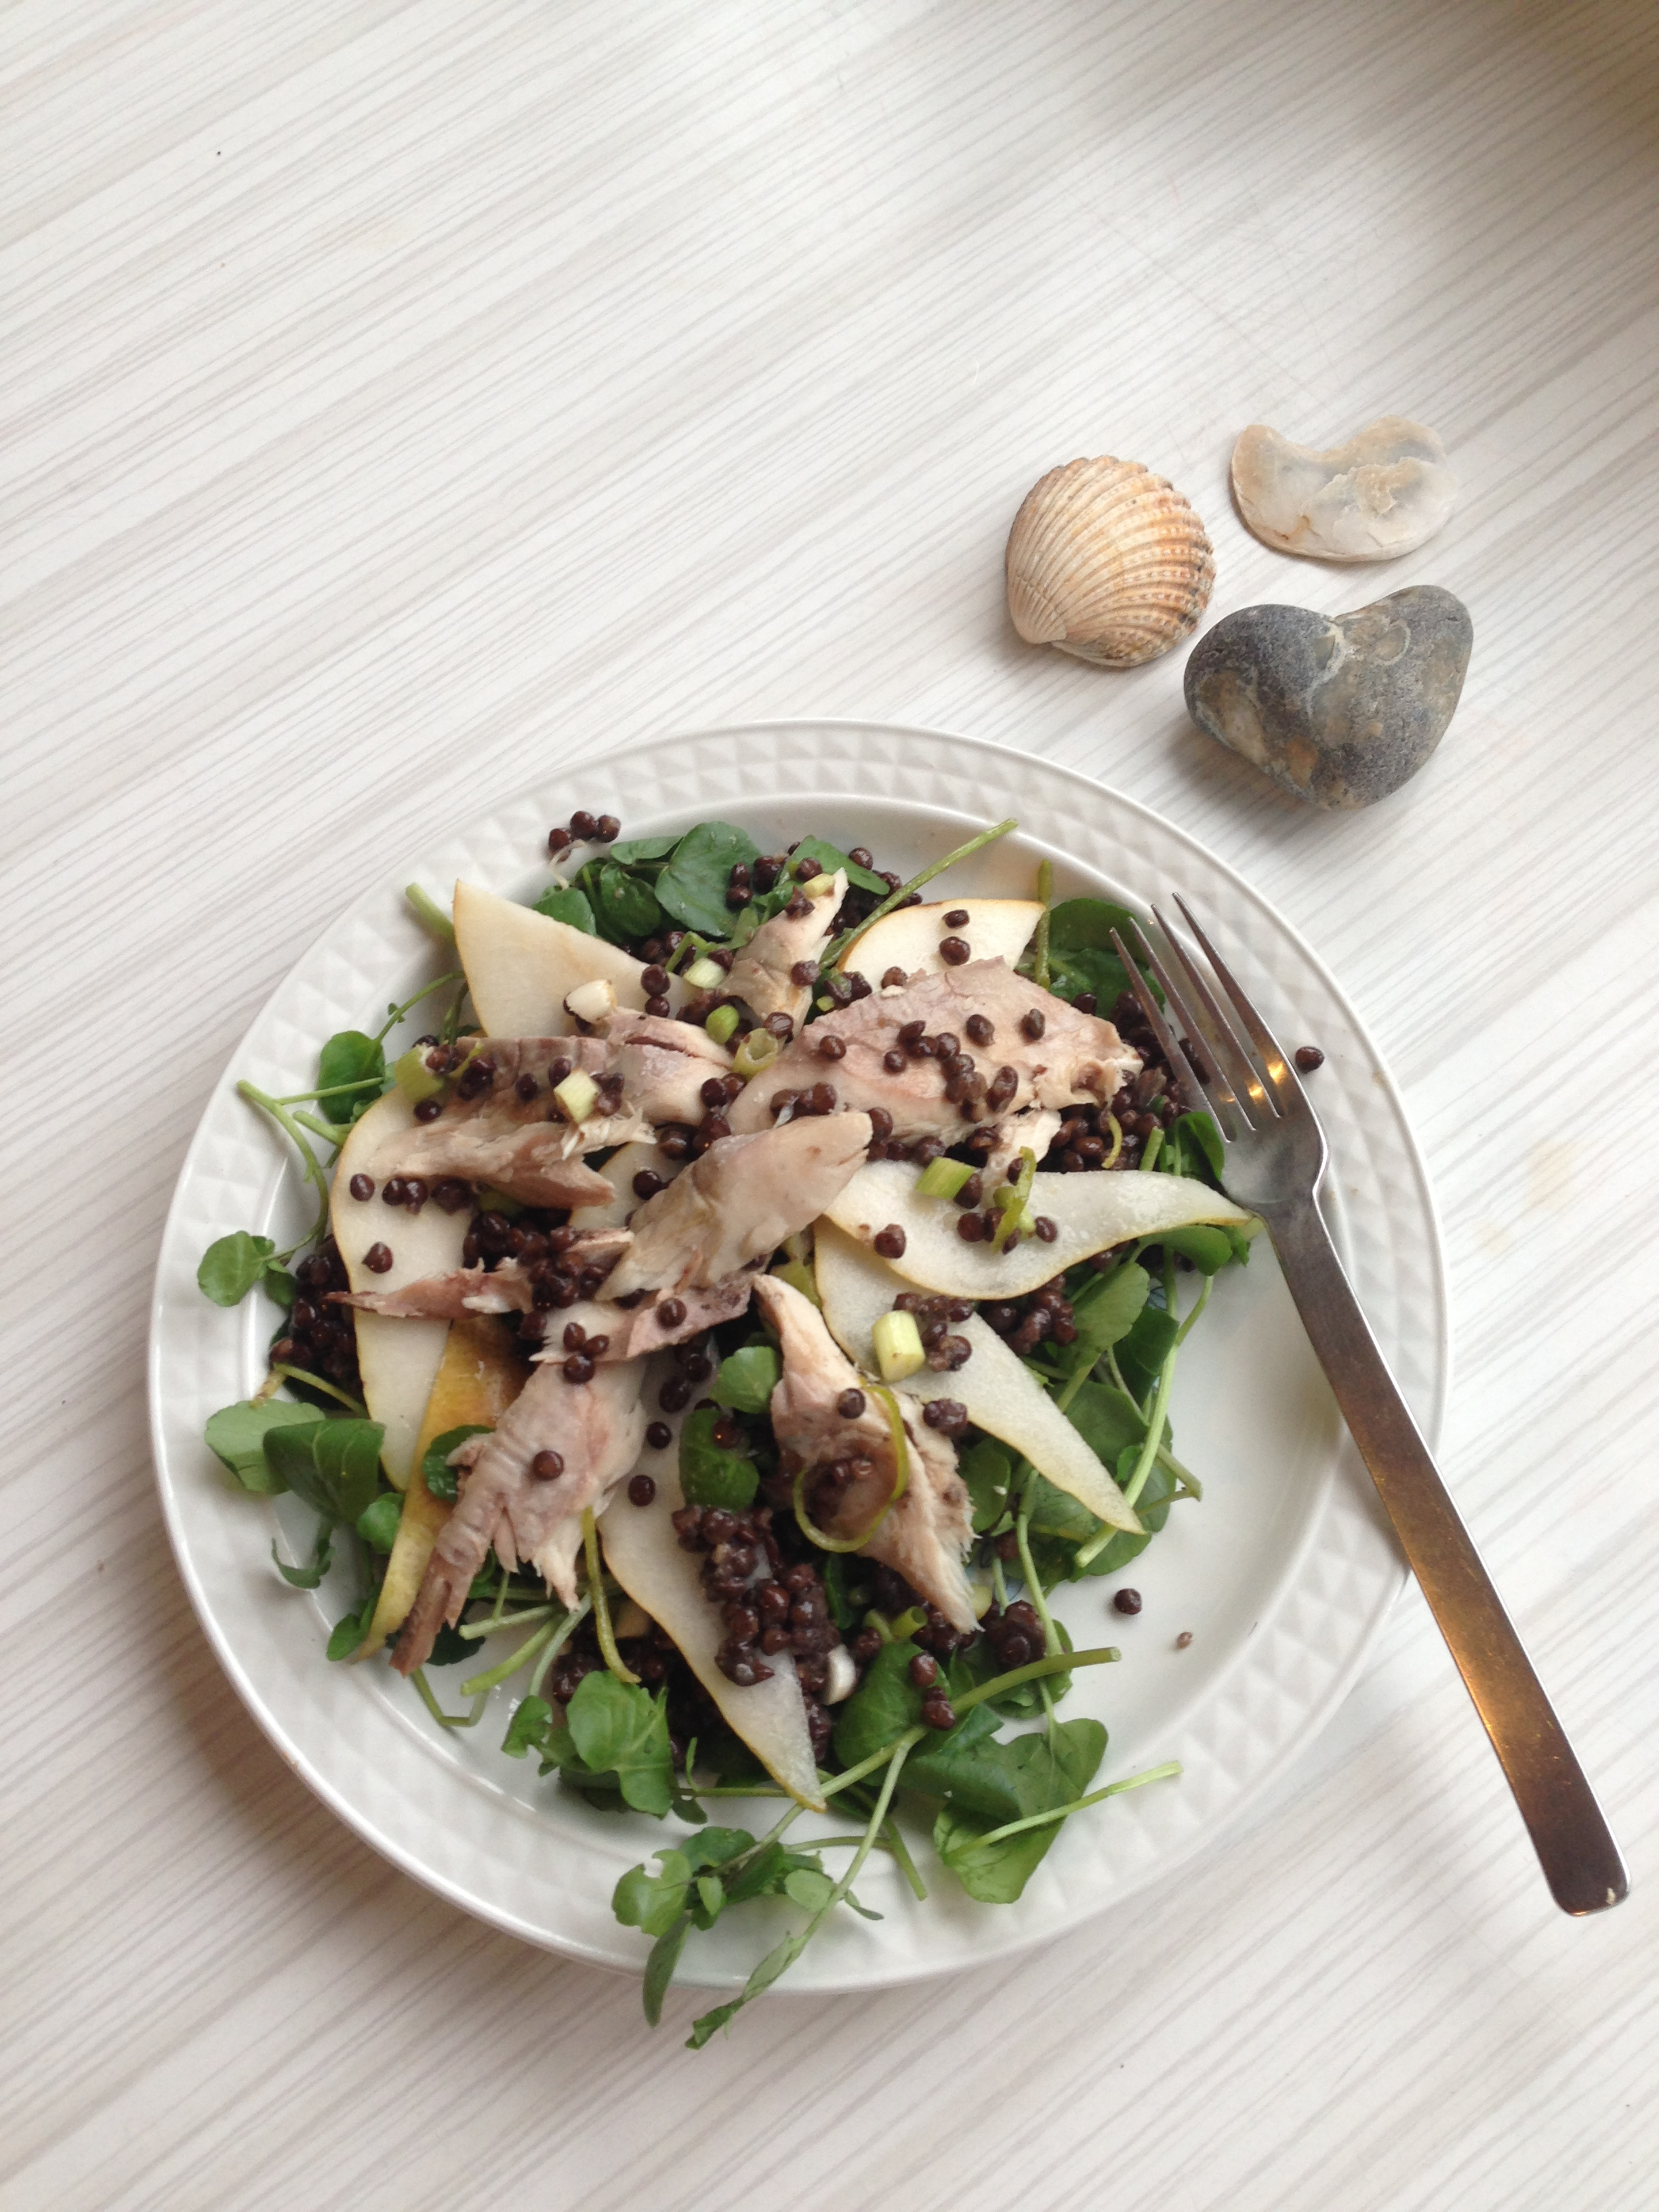 Autumn Salad - Zingy Lime, Mackerel, Pear and Lentil